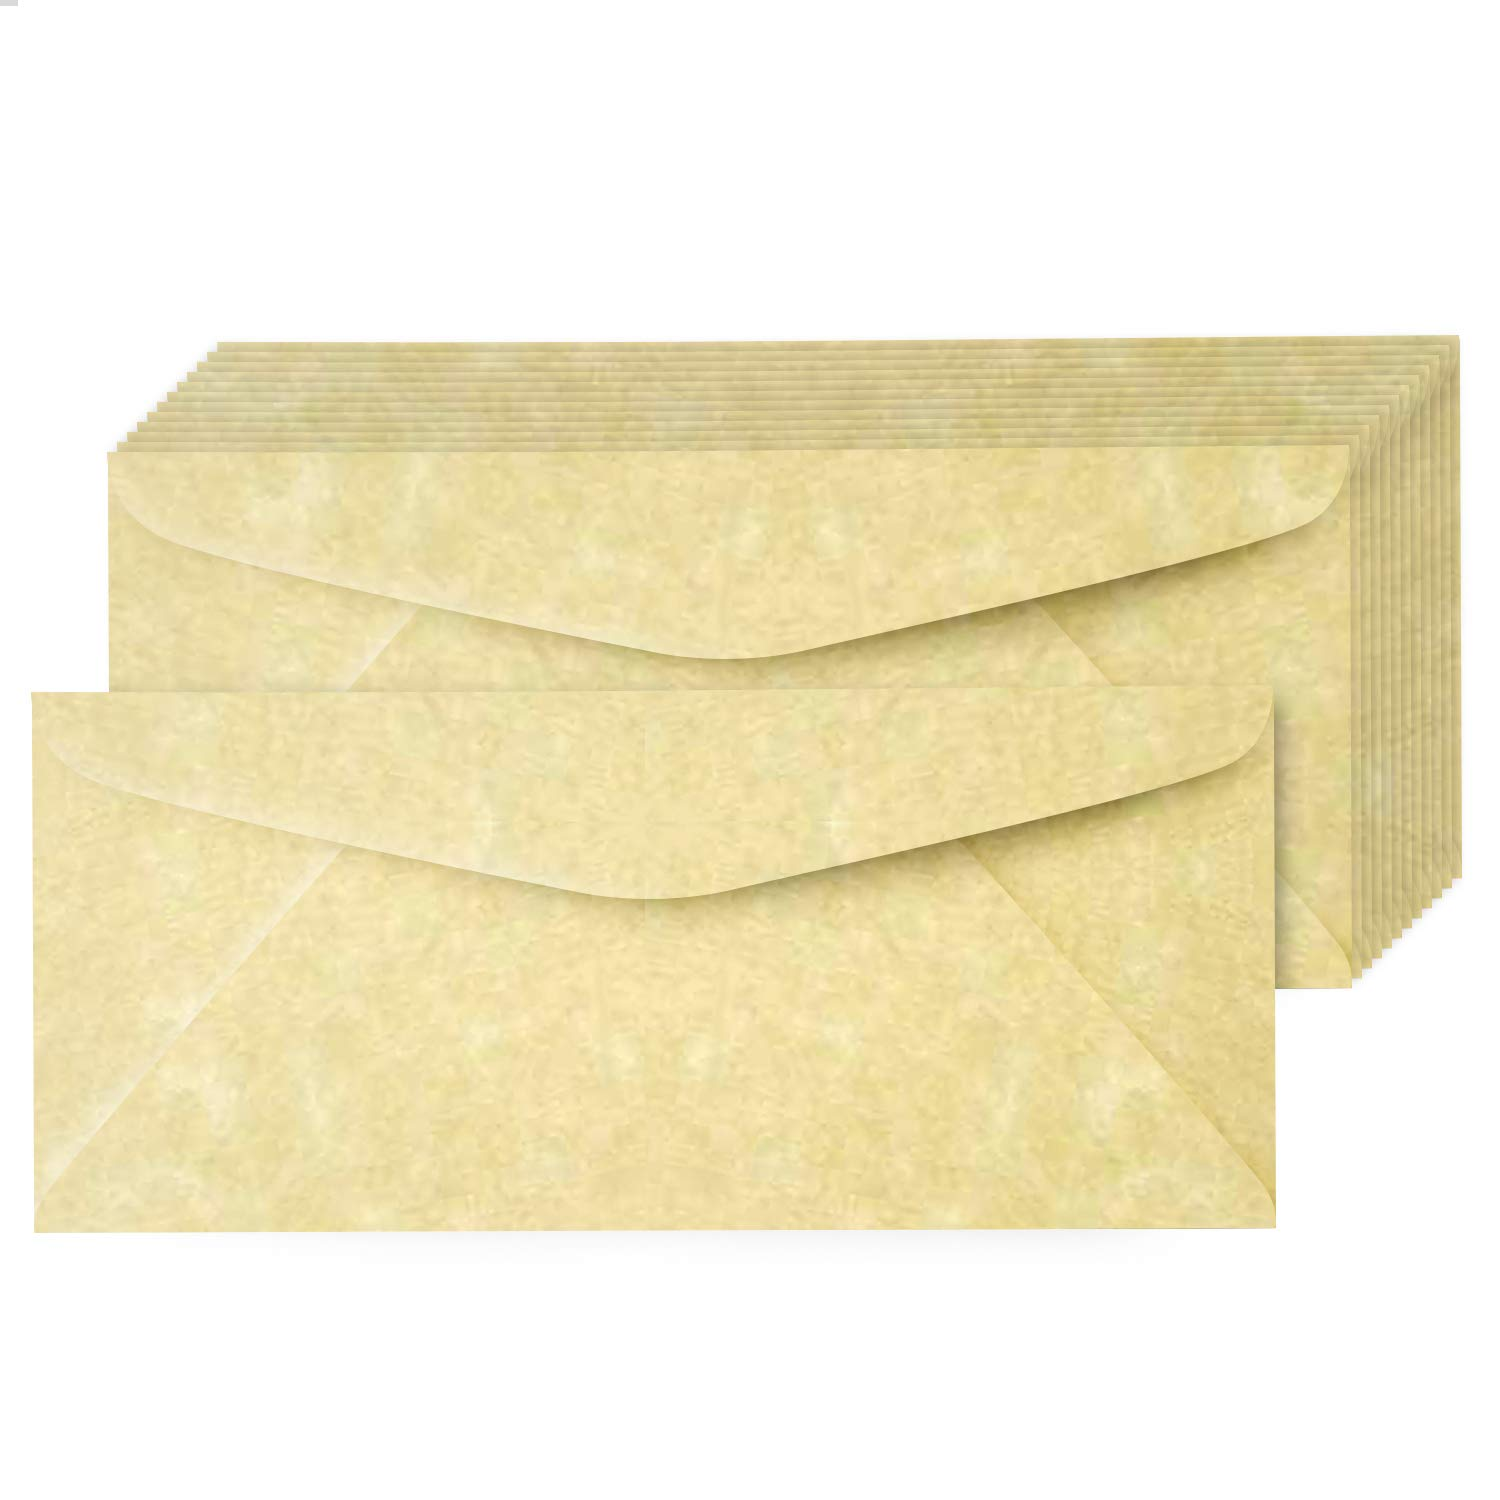 Ancient Gold #10 Astroparche Parchment Business Envelopes – Perfect for Invitations, Greetings, Holiday, Office, Invoices, Letters, Mailings   4 1/8 x 9 1/2 Inches   50 Per Pack